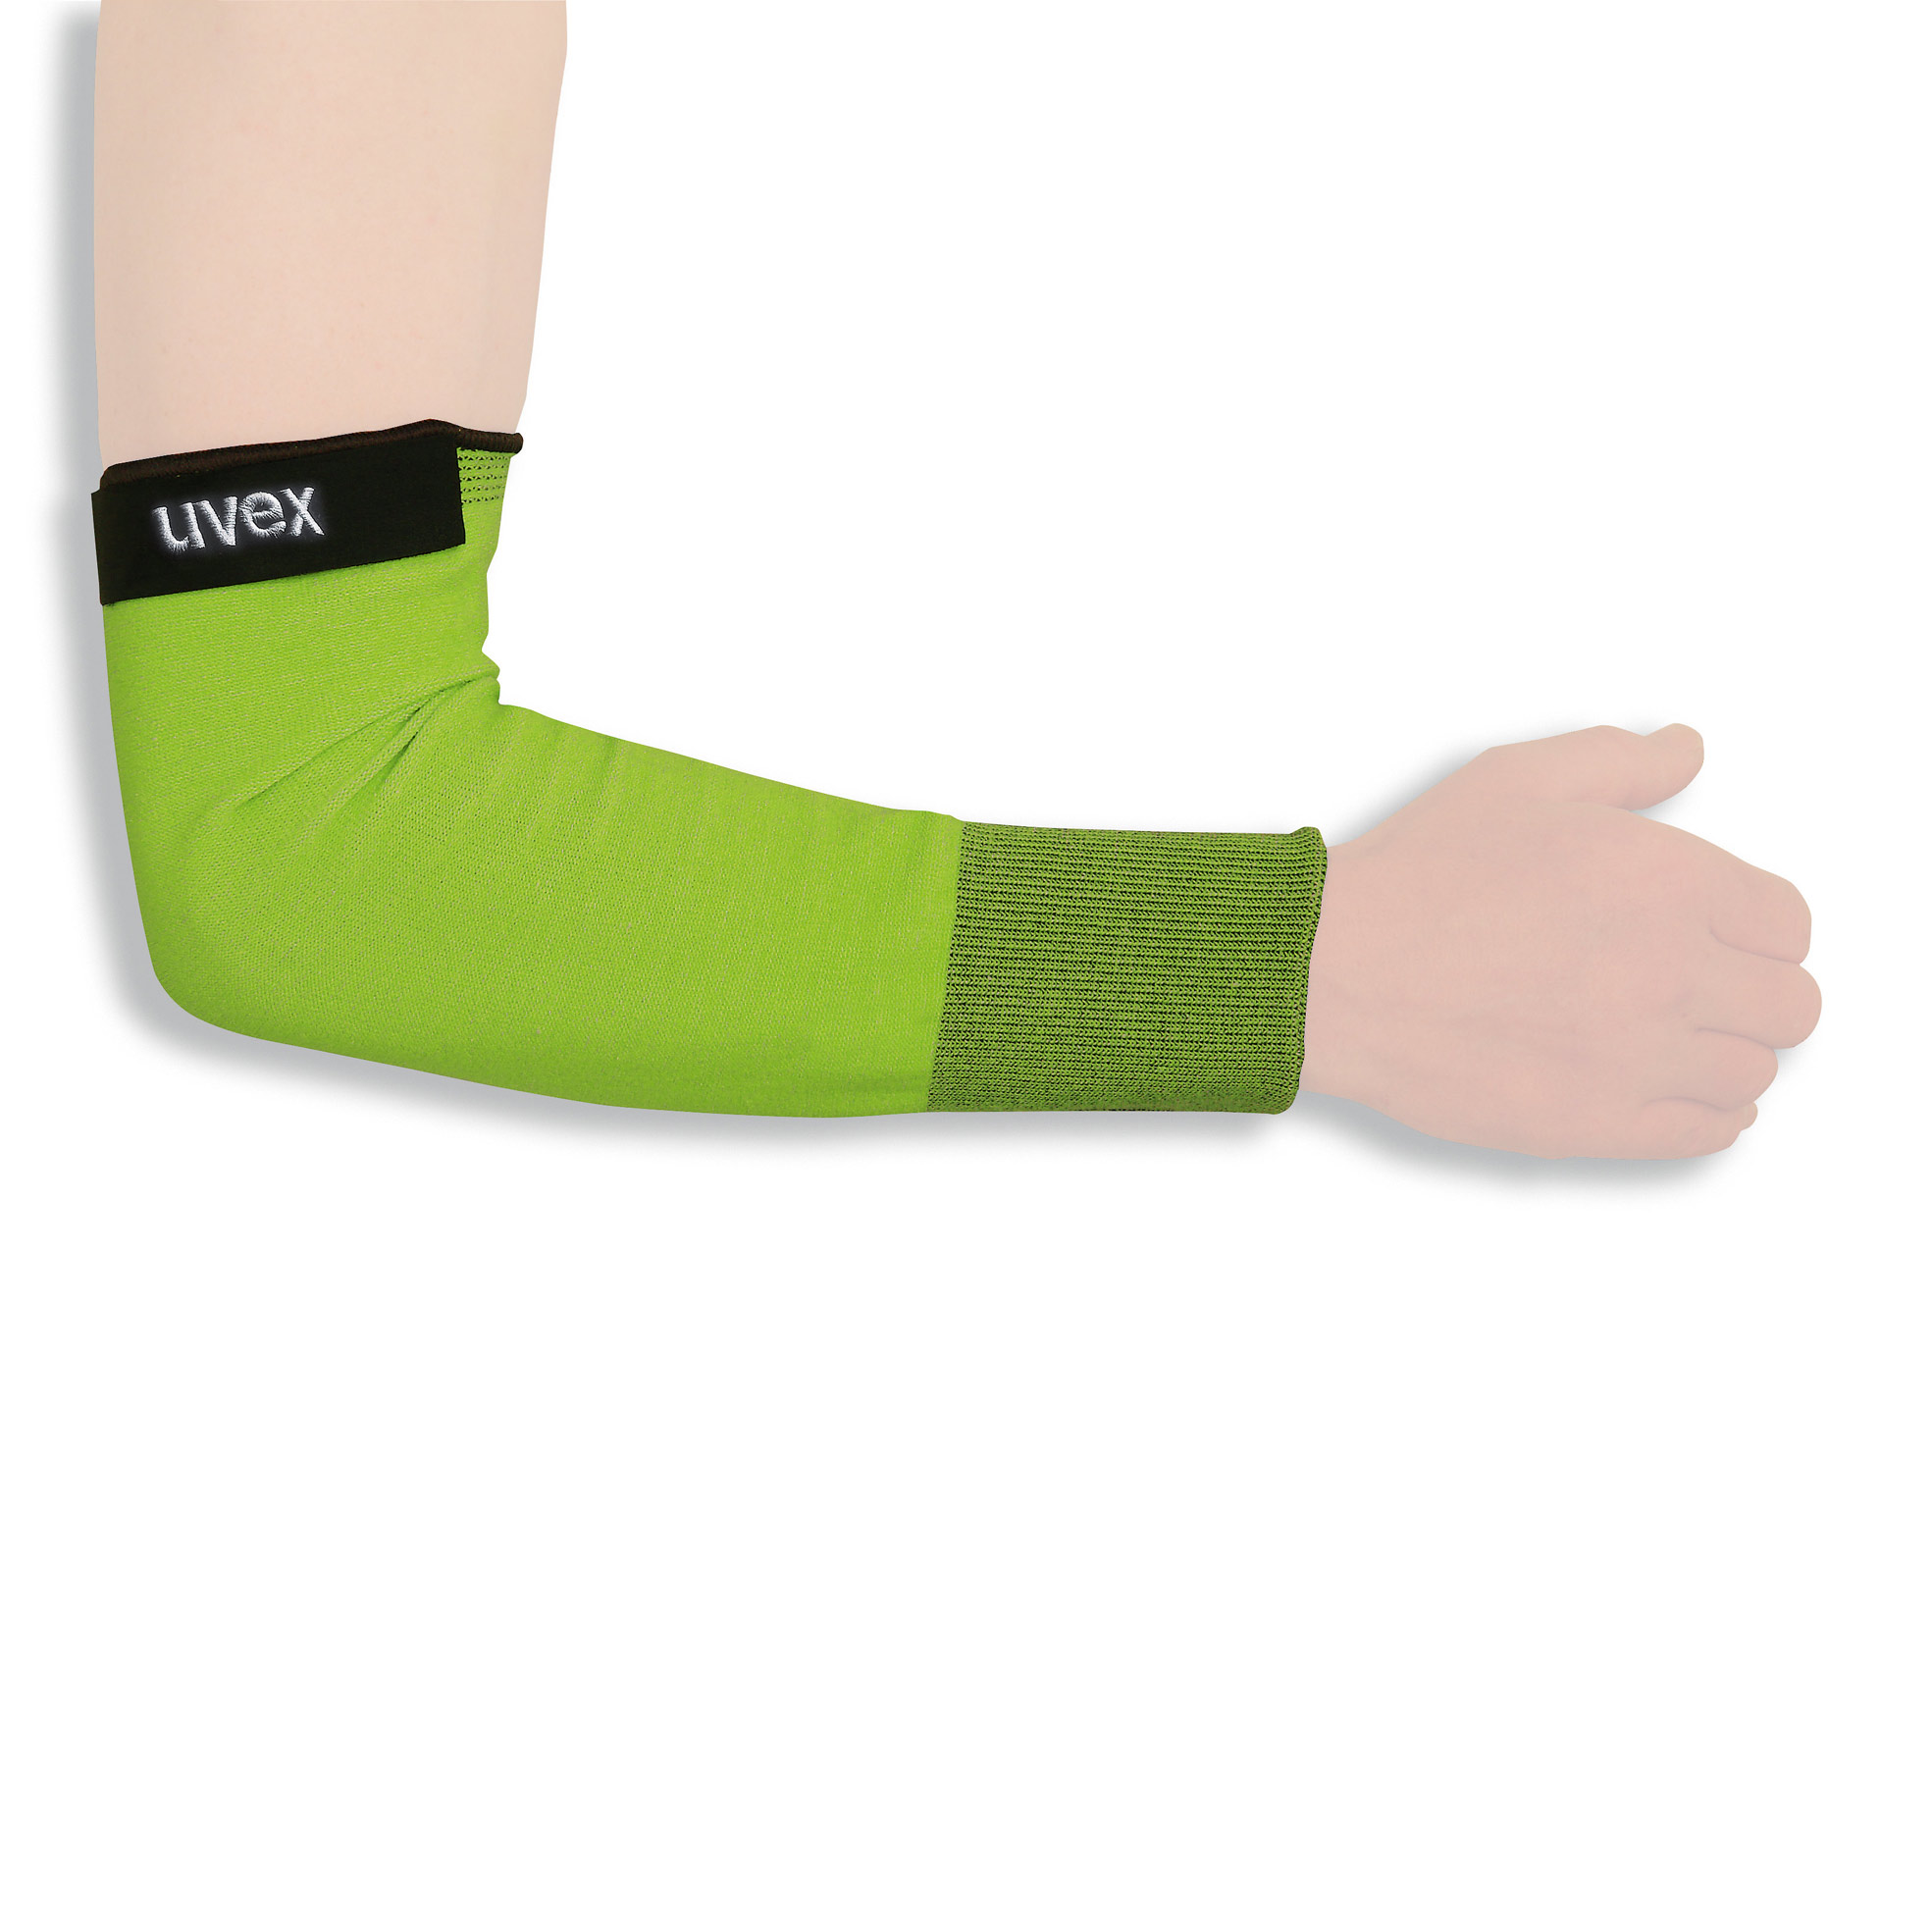 Uvex C500 Sleeve Lower Arm Protection Safety Gloves